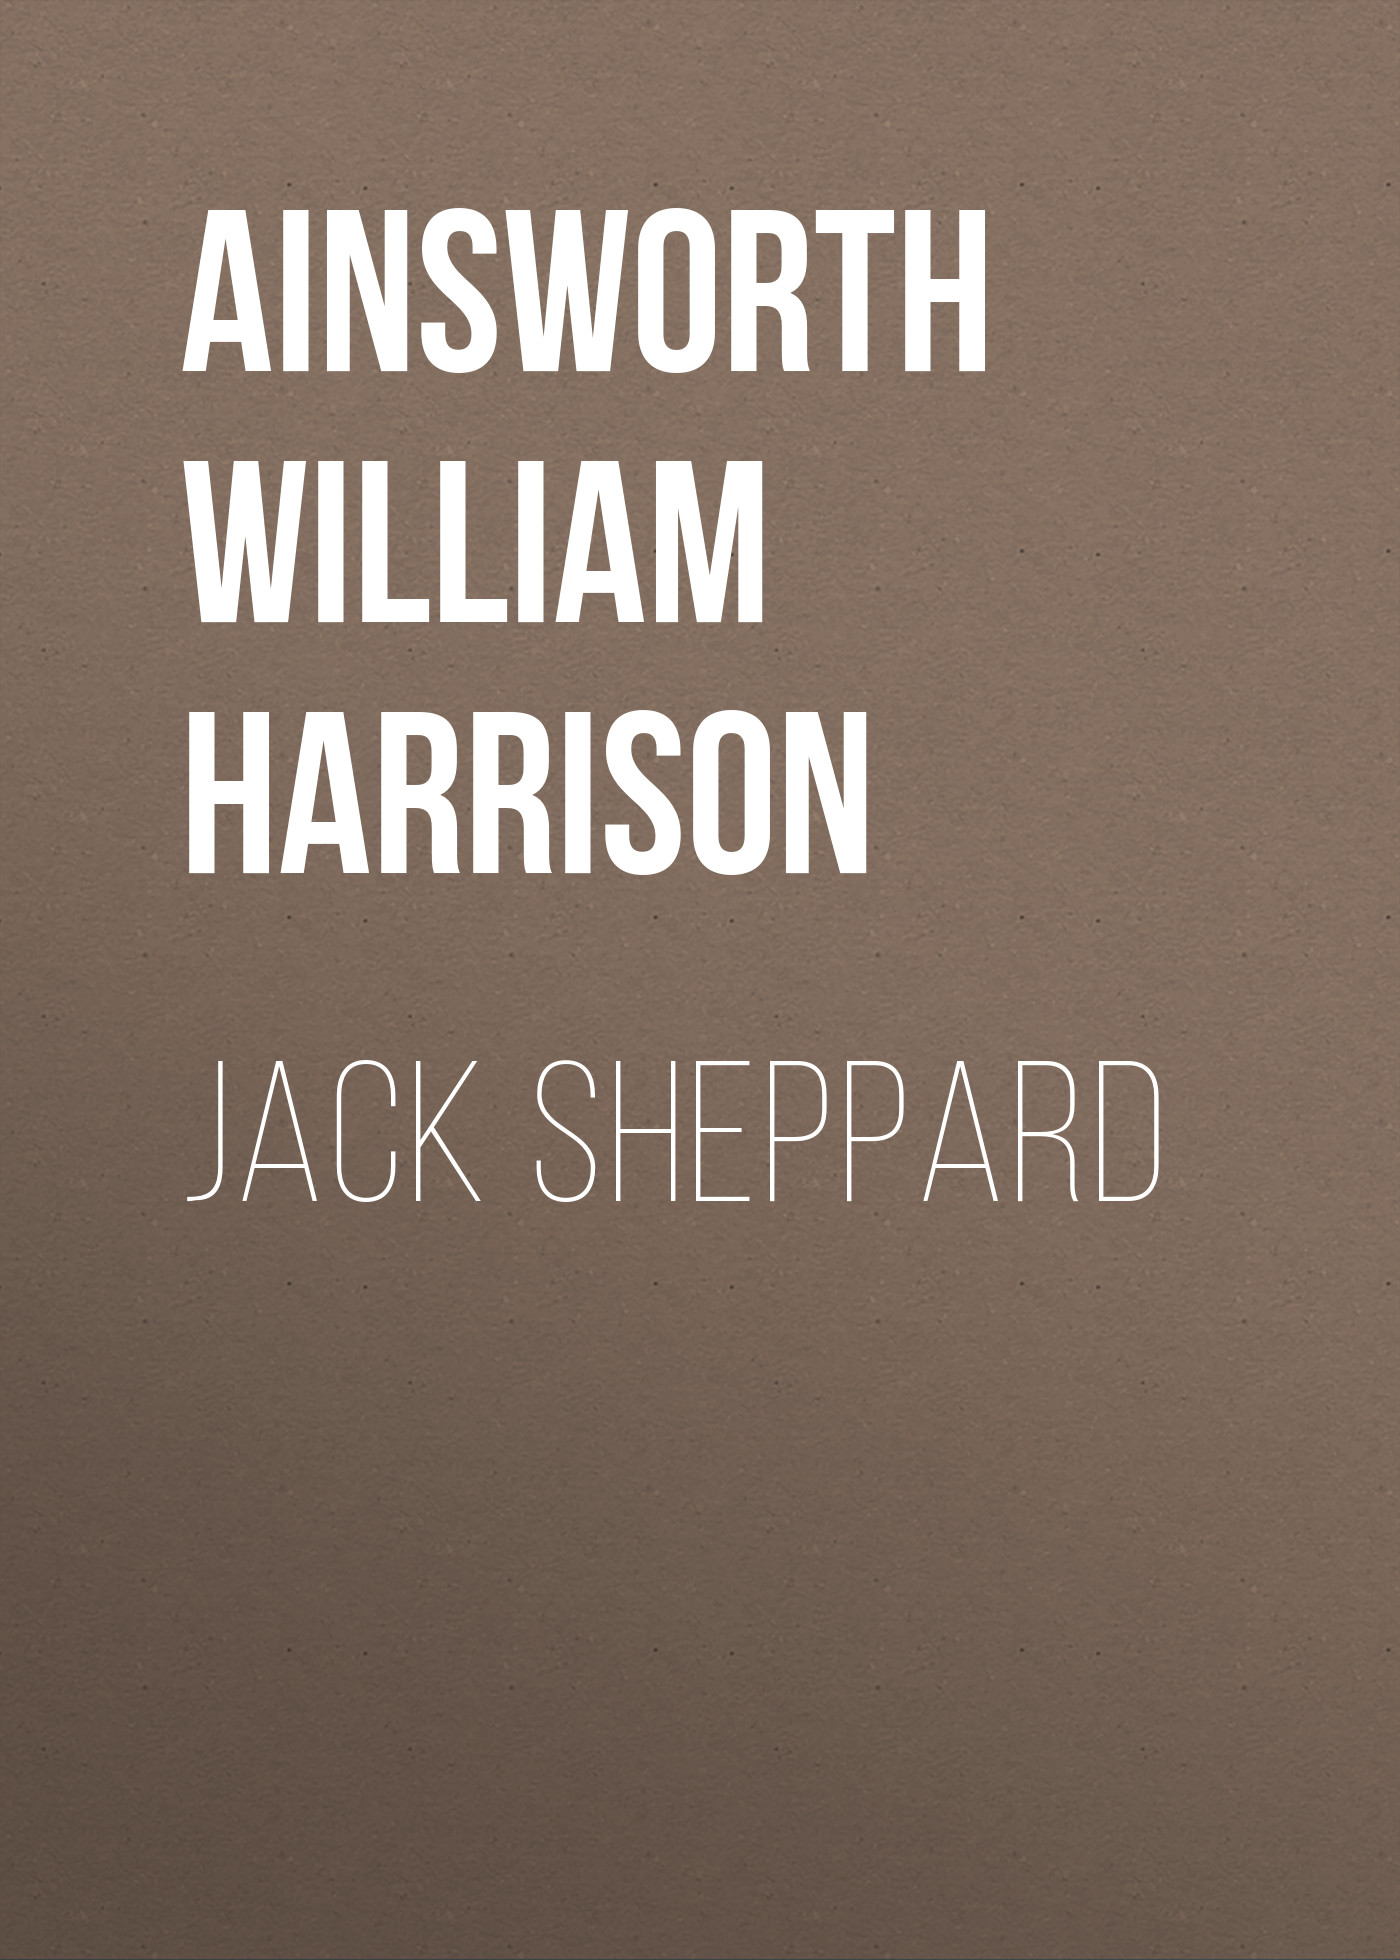 Ainsworth William Harrison Jack Sheppard ainsworth william harrison the star chamber an historical romance volume 1